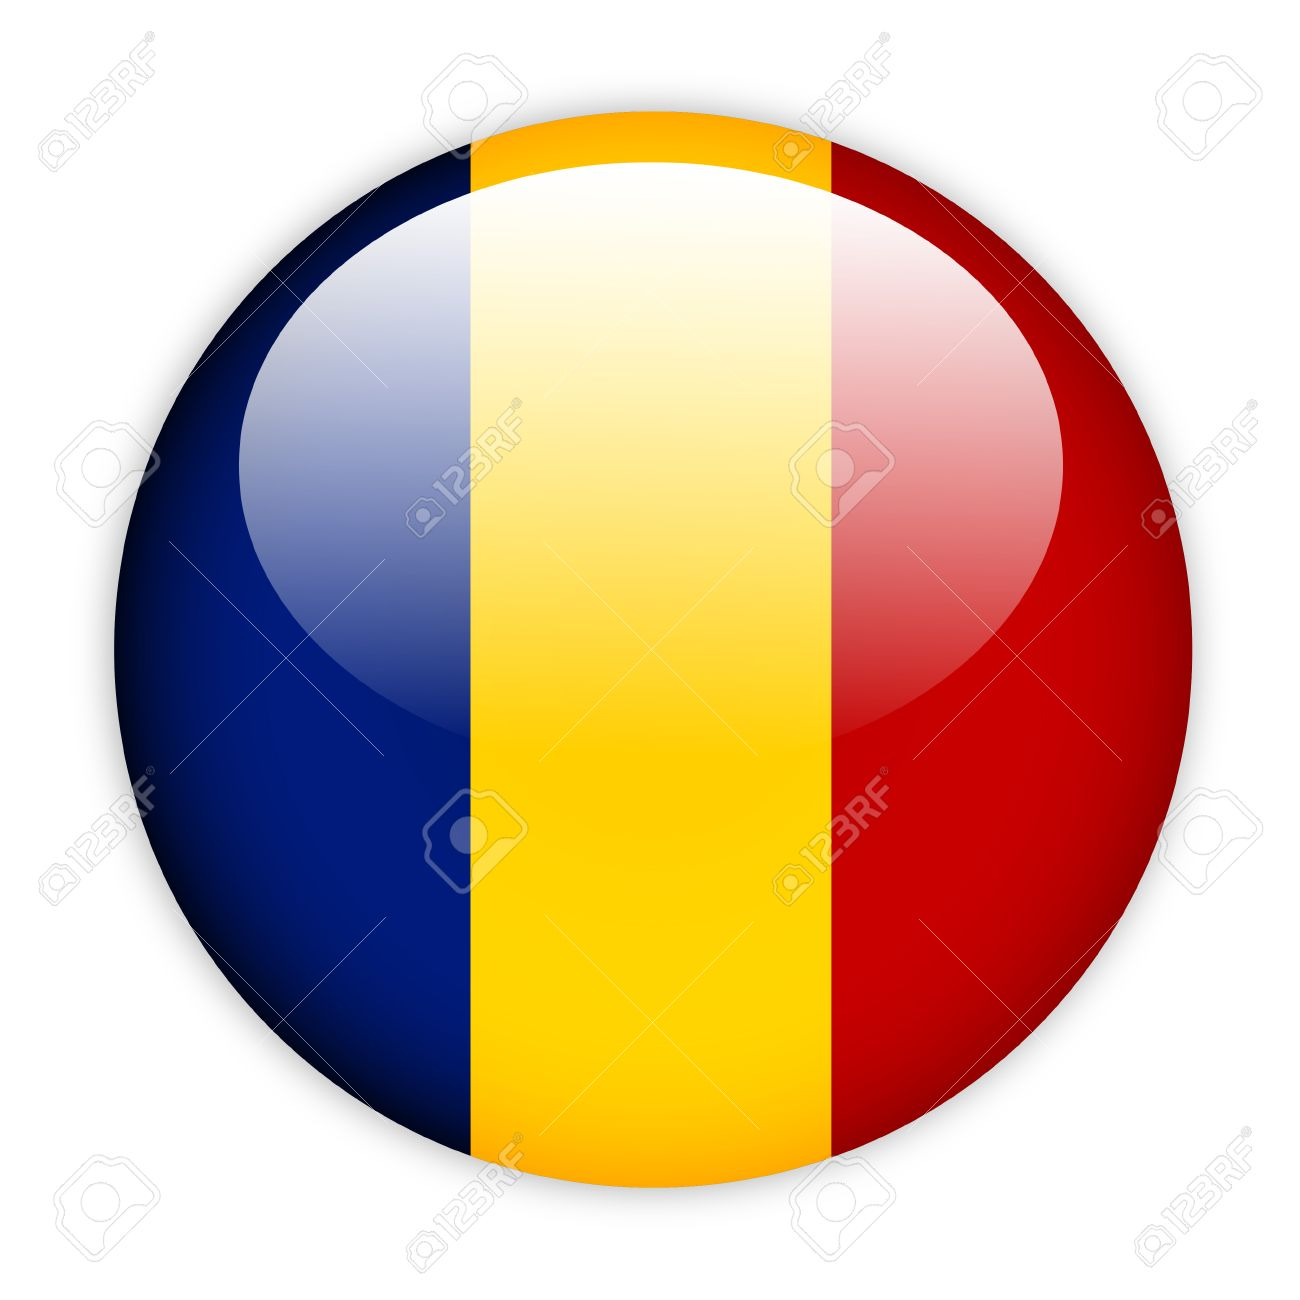 Chad Flag Button On White Stock Photo Picture And Royalty Free - Chad flag